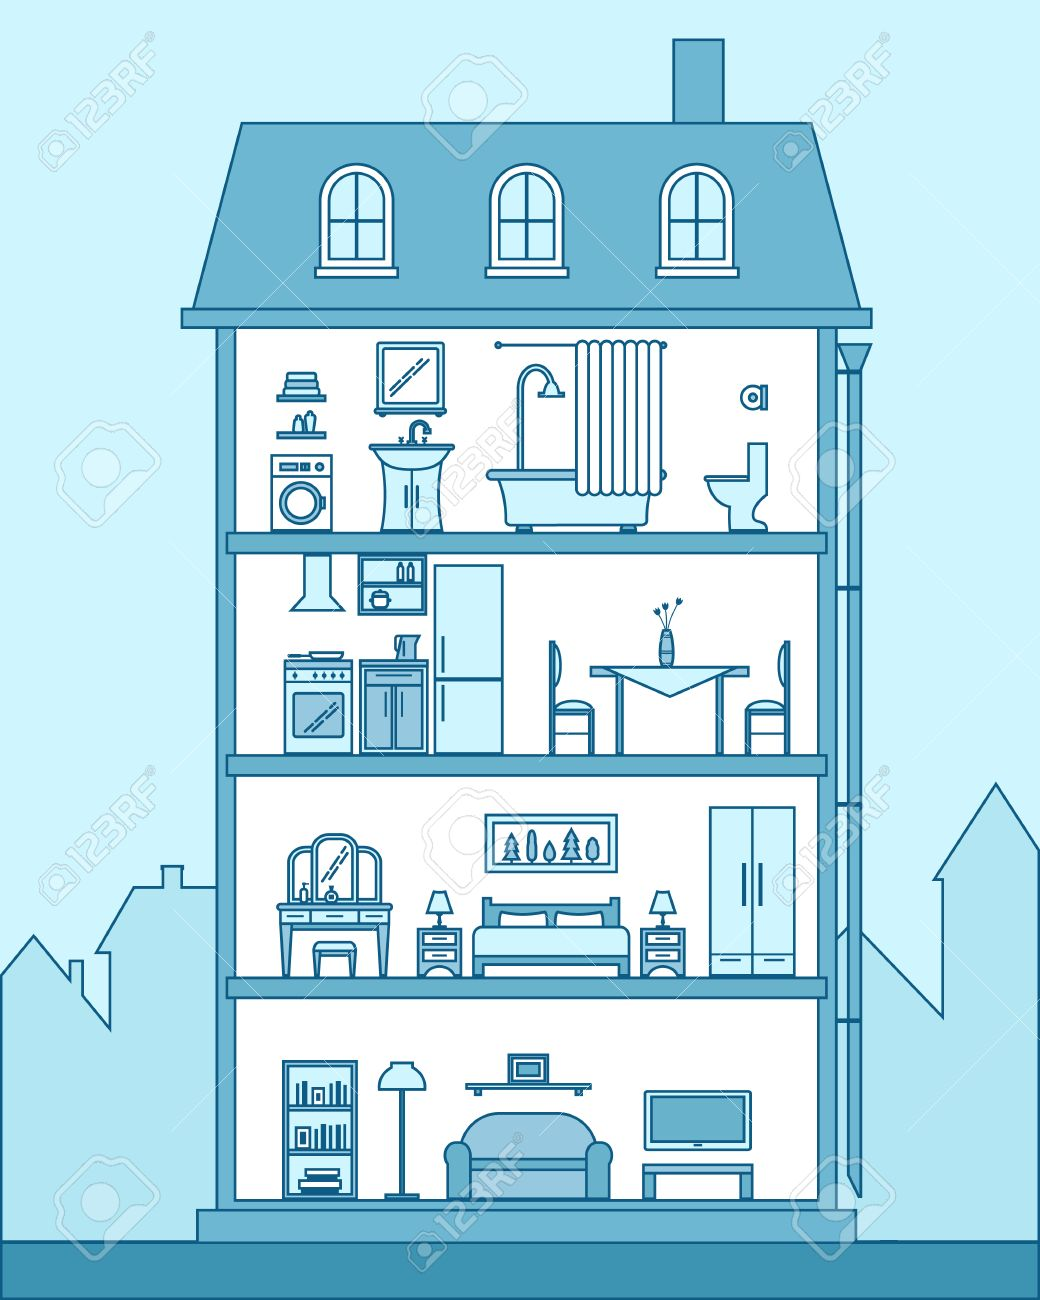 House in cut. Detailed modern house interior. Rooms with furniture. Flat line style vector illustration. - 42448532